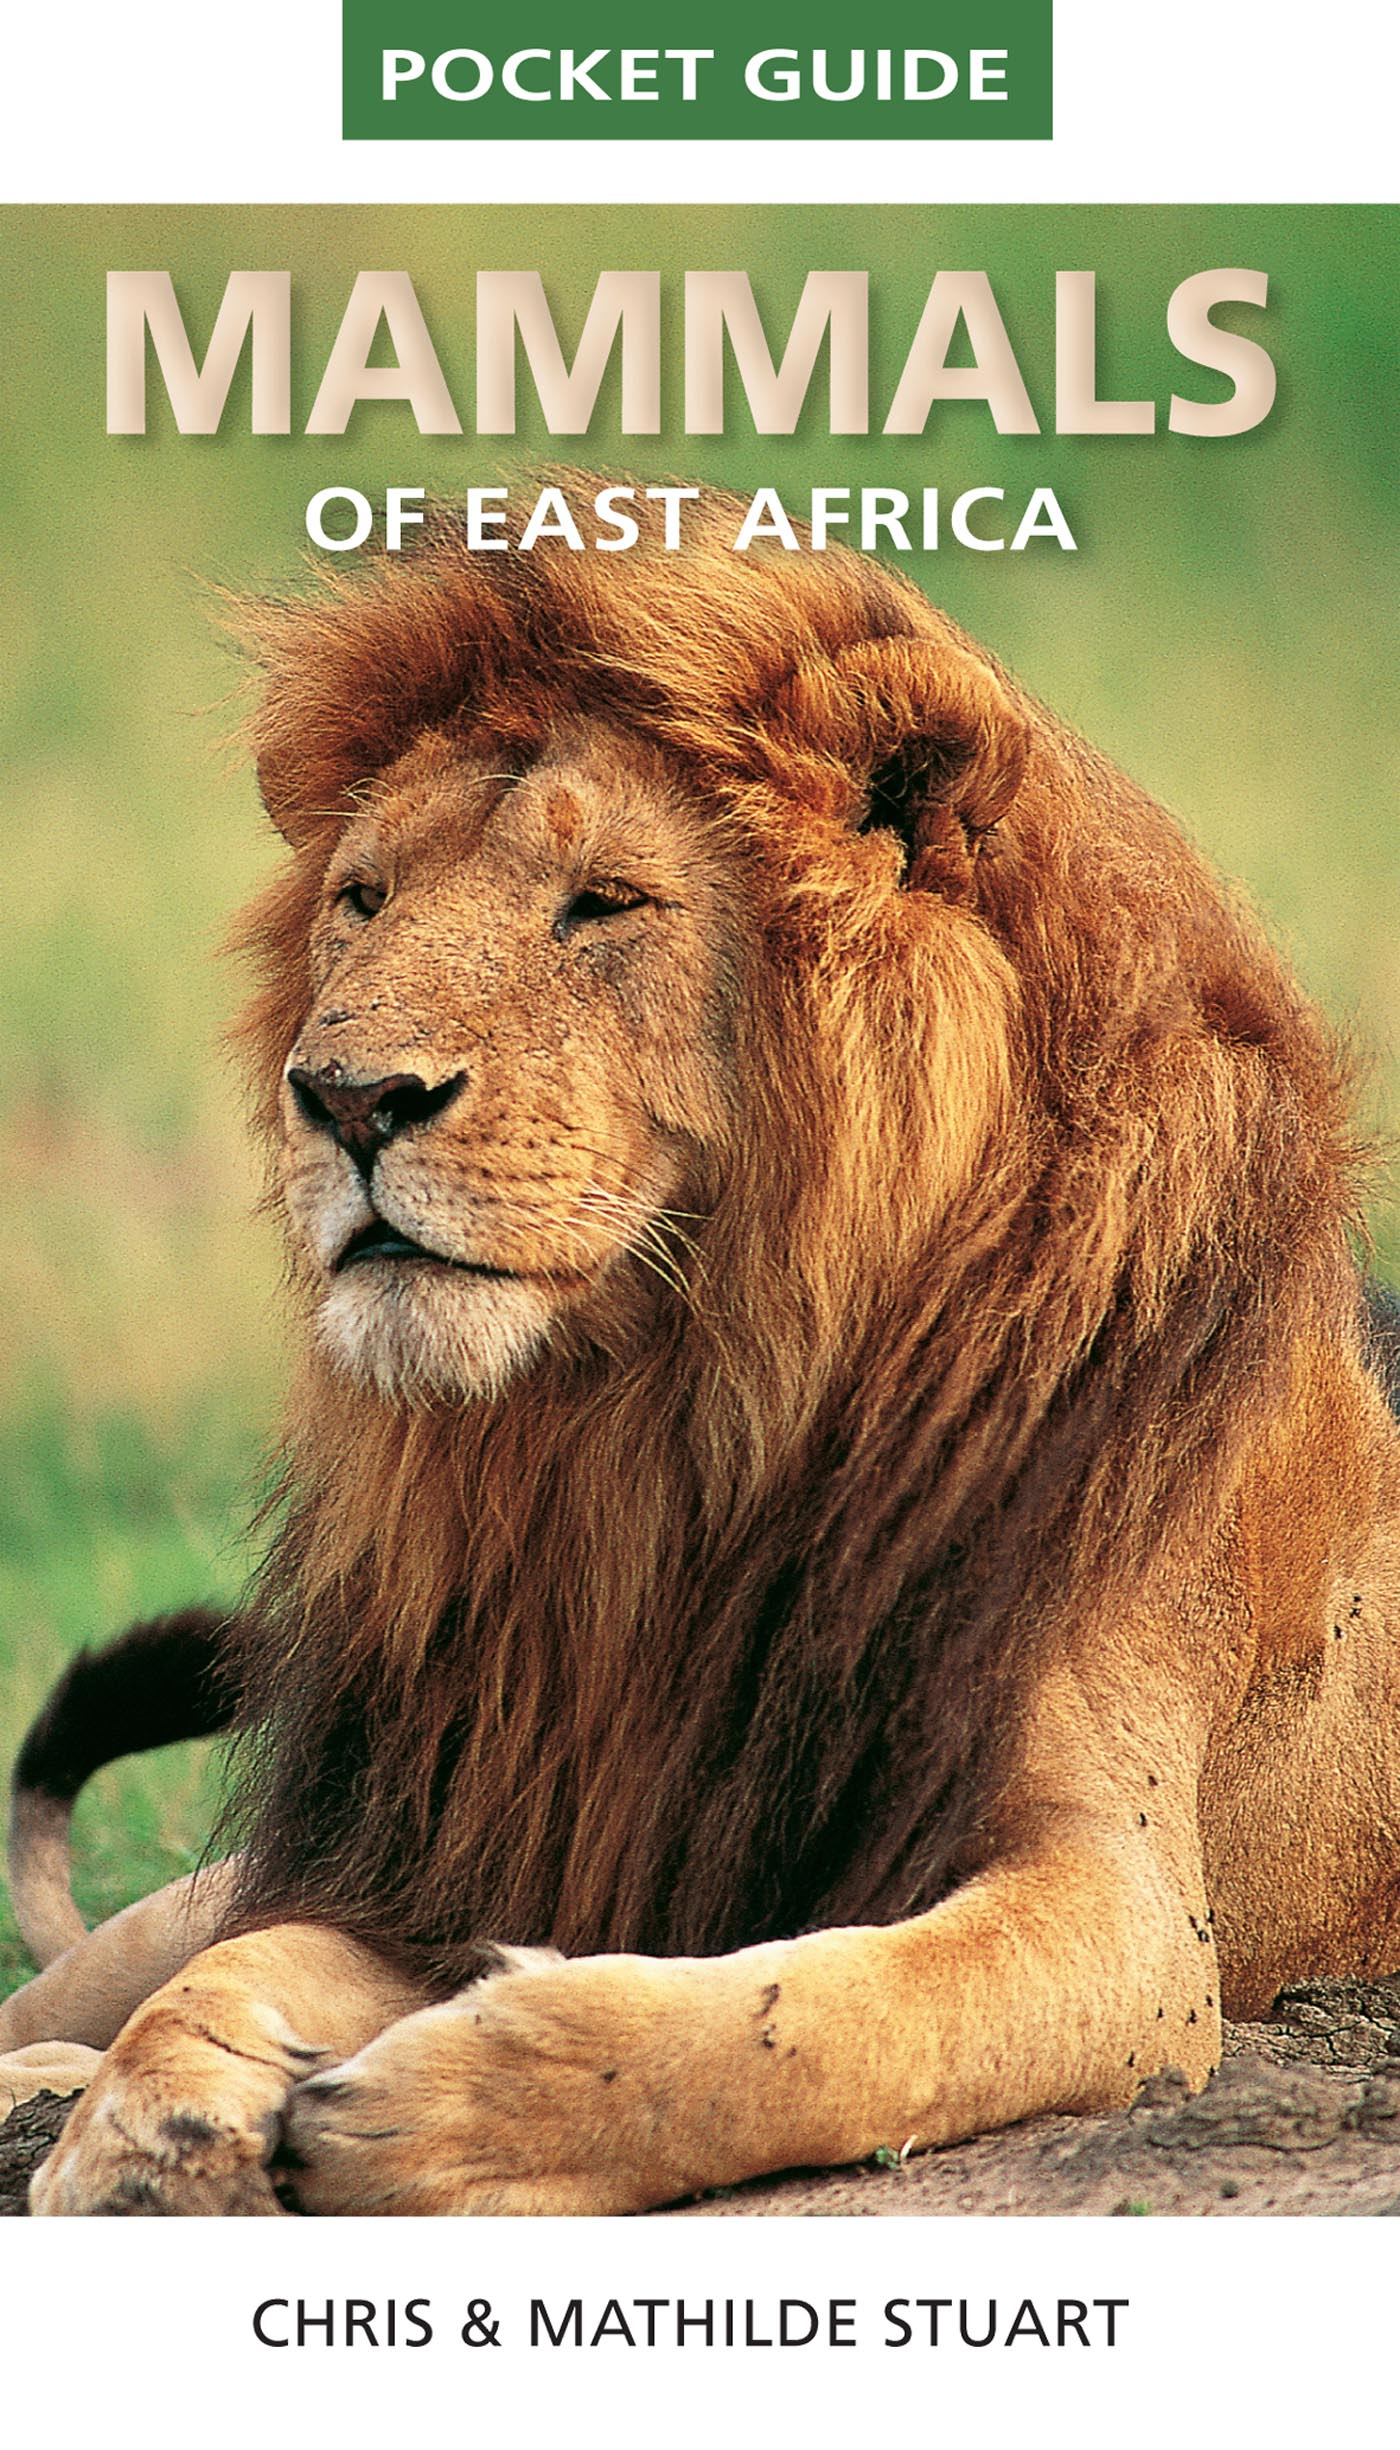 Picture of Pocket Guide to Mammals of East Africa